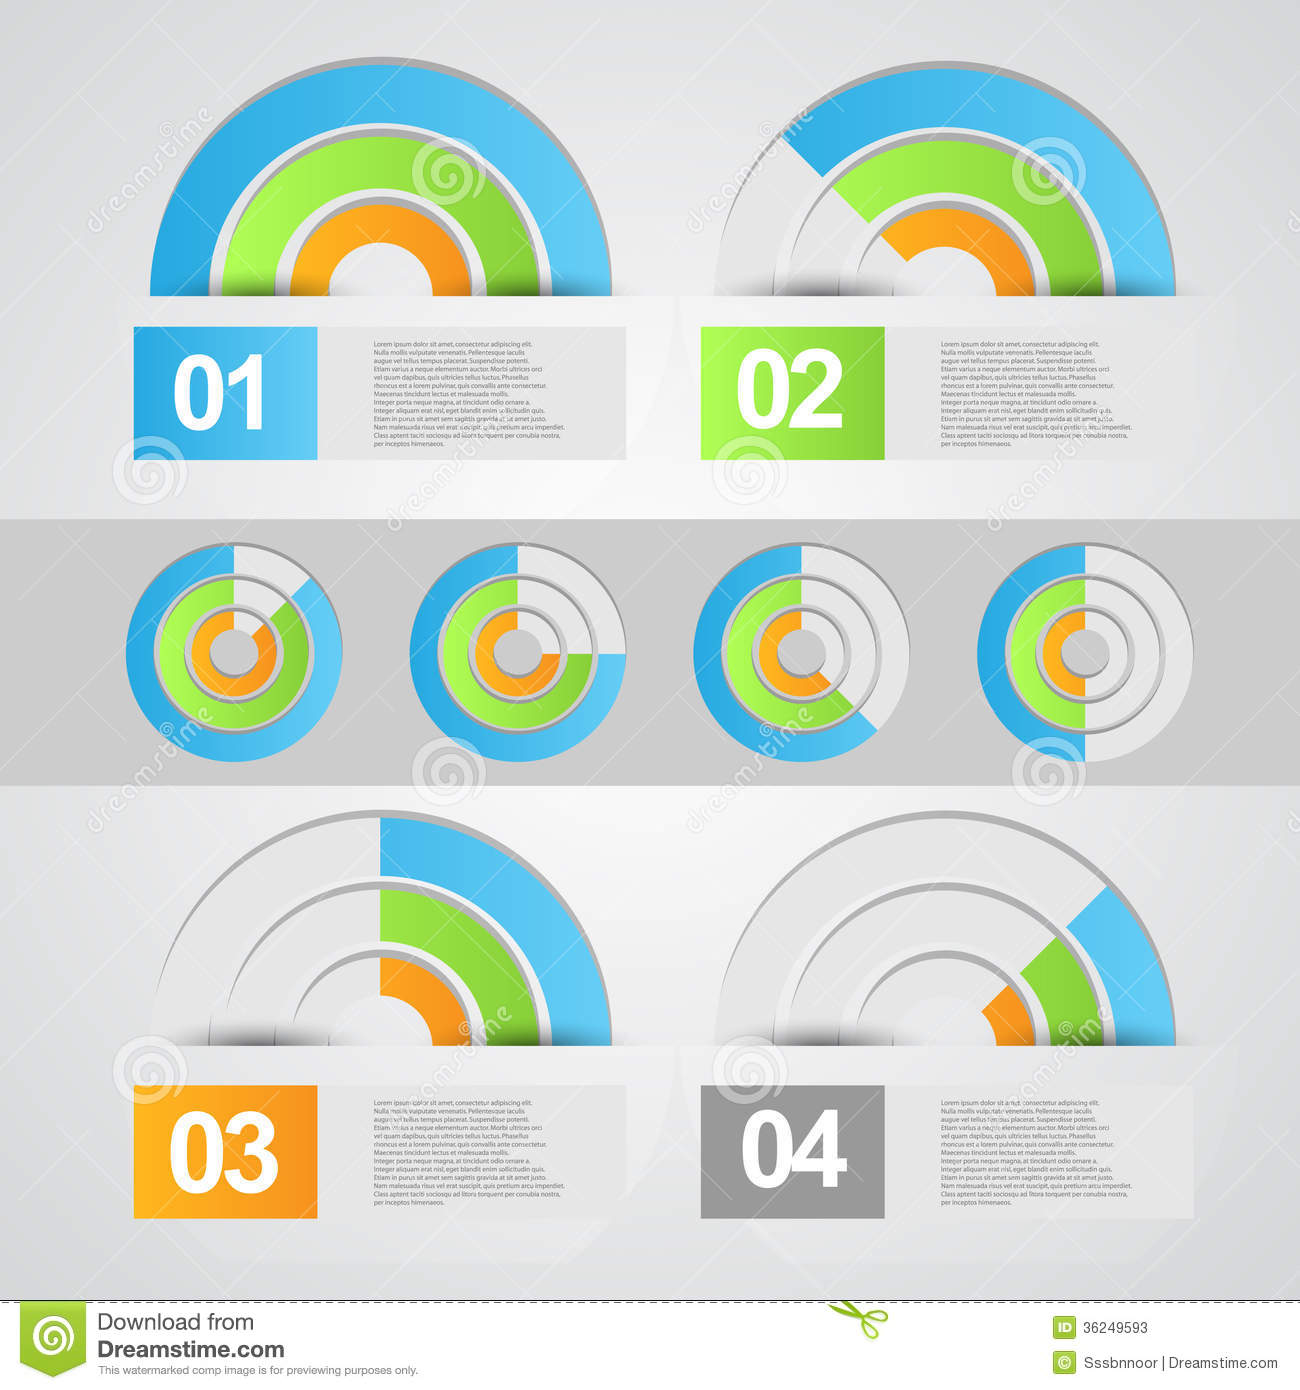 Information graphic stock photos image 36249593 for Copy design